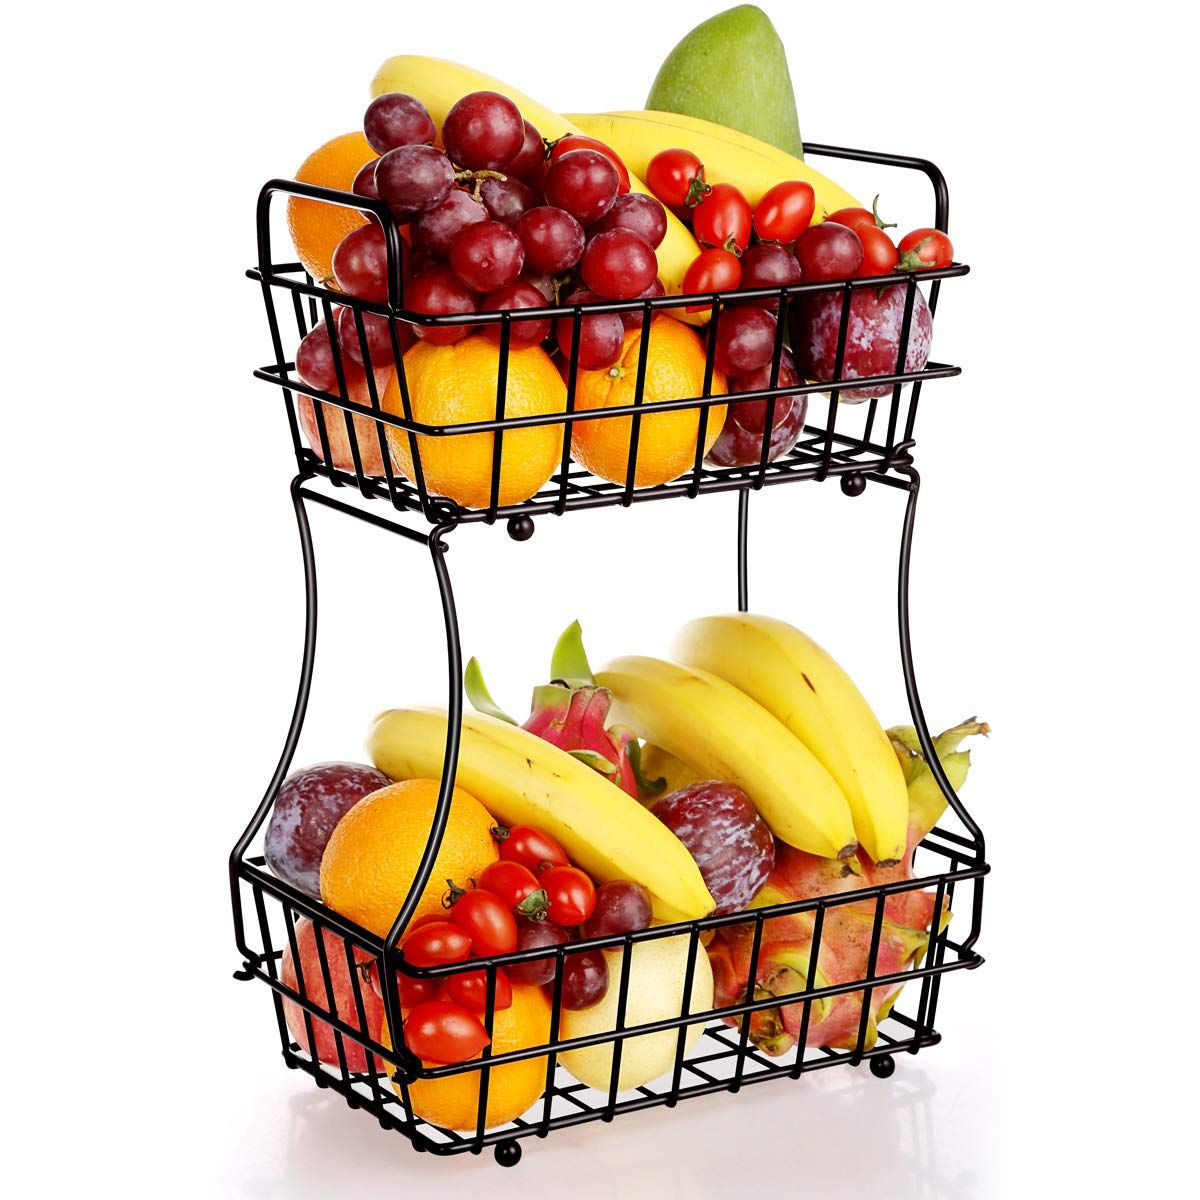 Tomcare 2 Tier Fruit Basket Metal Fruit Bowl Bread Baskets Detachable Fruit Holder Kitchen Storage Baskets St Tiered Fruit Basket Fruit Holder Vegetable Snacks